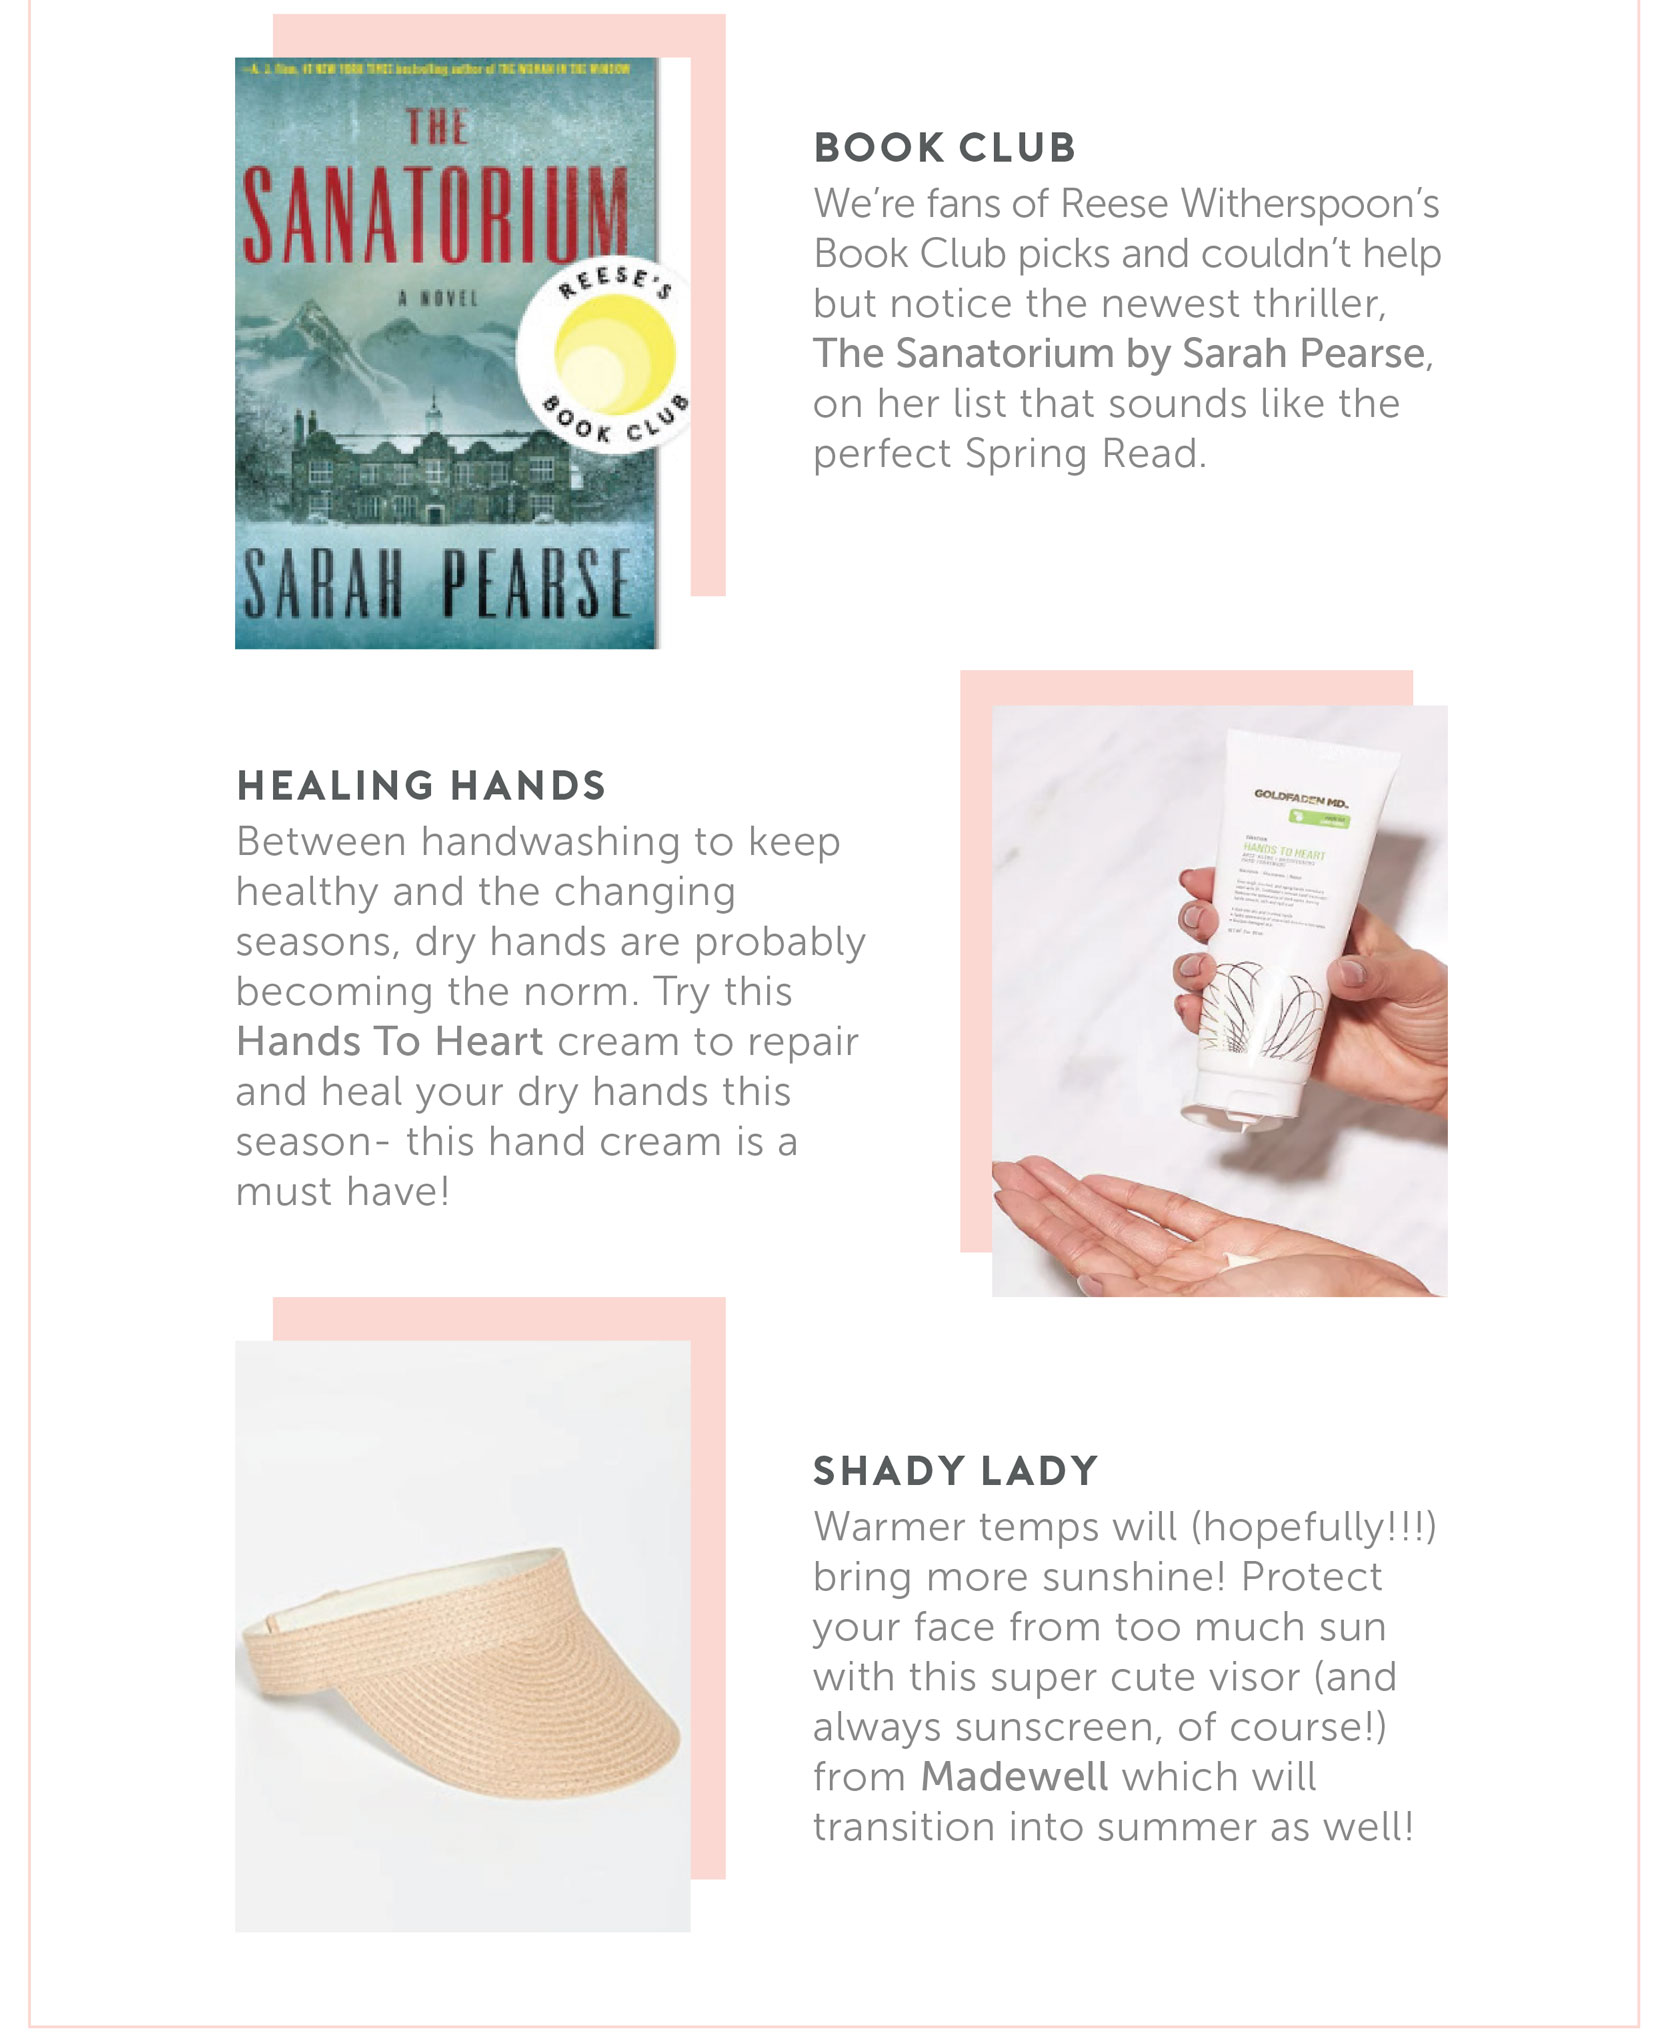 What we're eyeing this Spring - The Sanatorium by Sarah Pearse | Healing Hands | Shady Lady